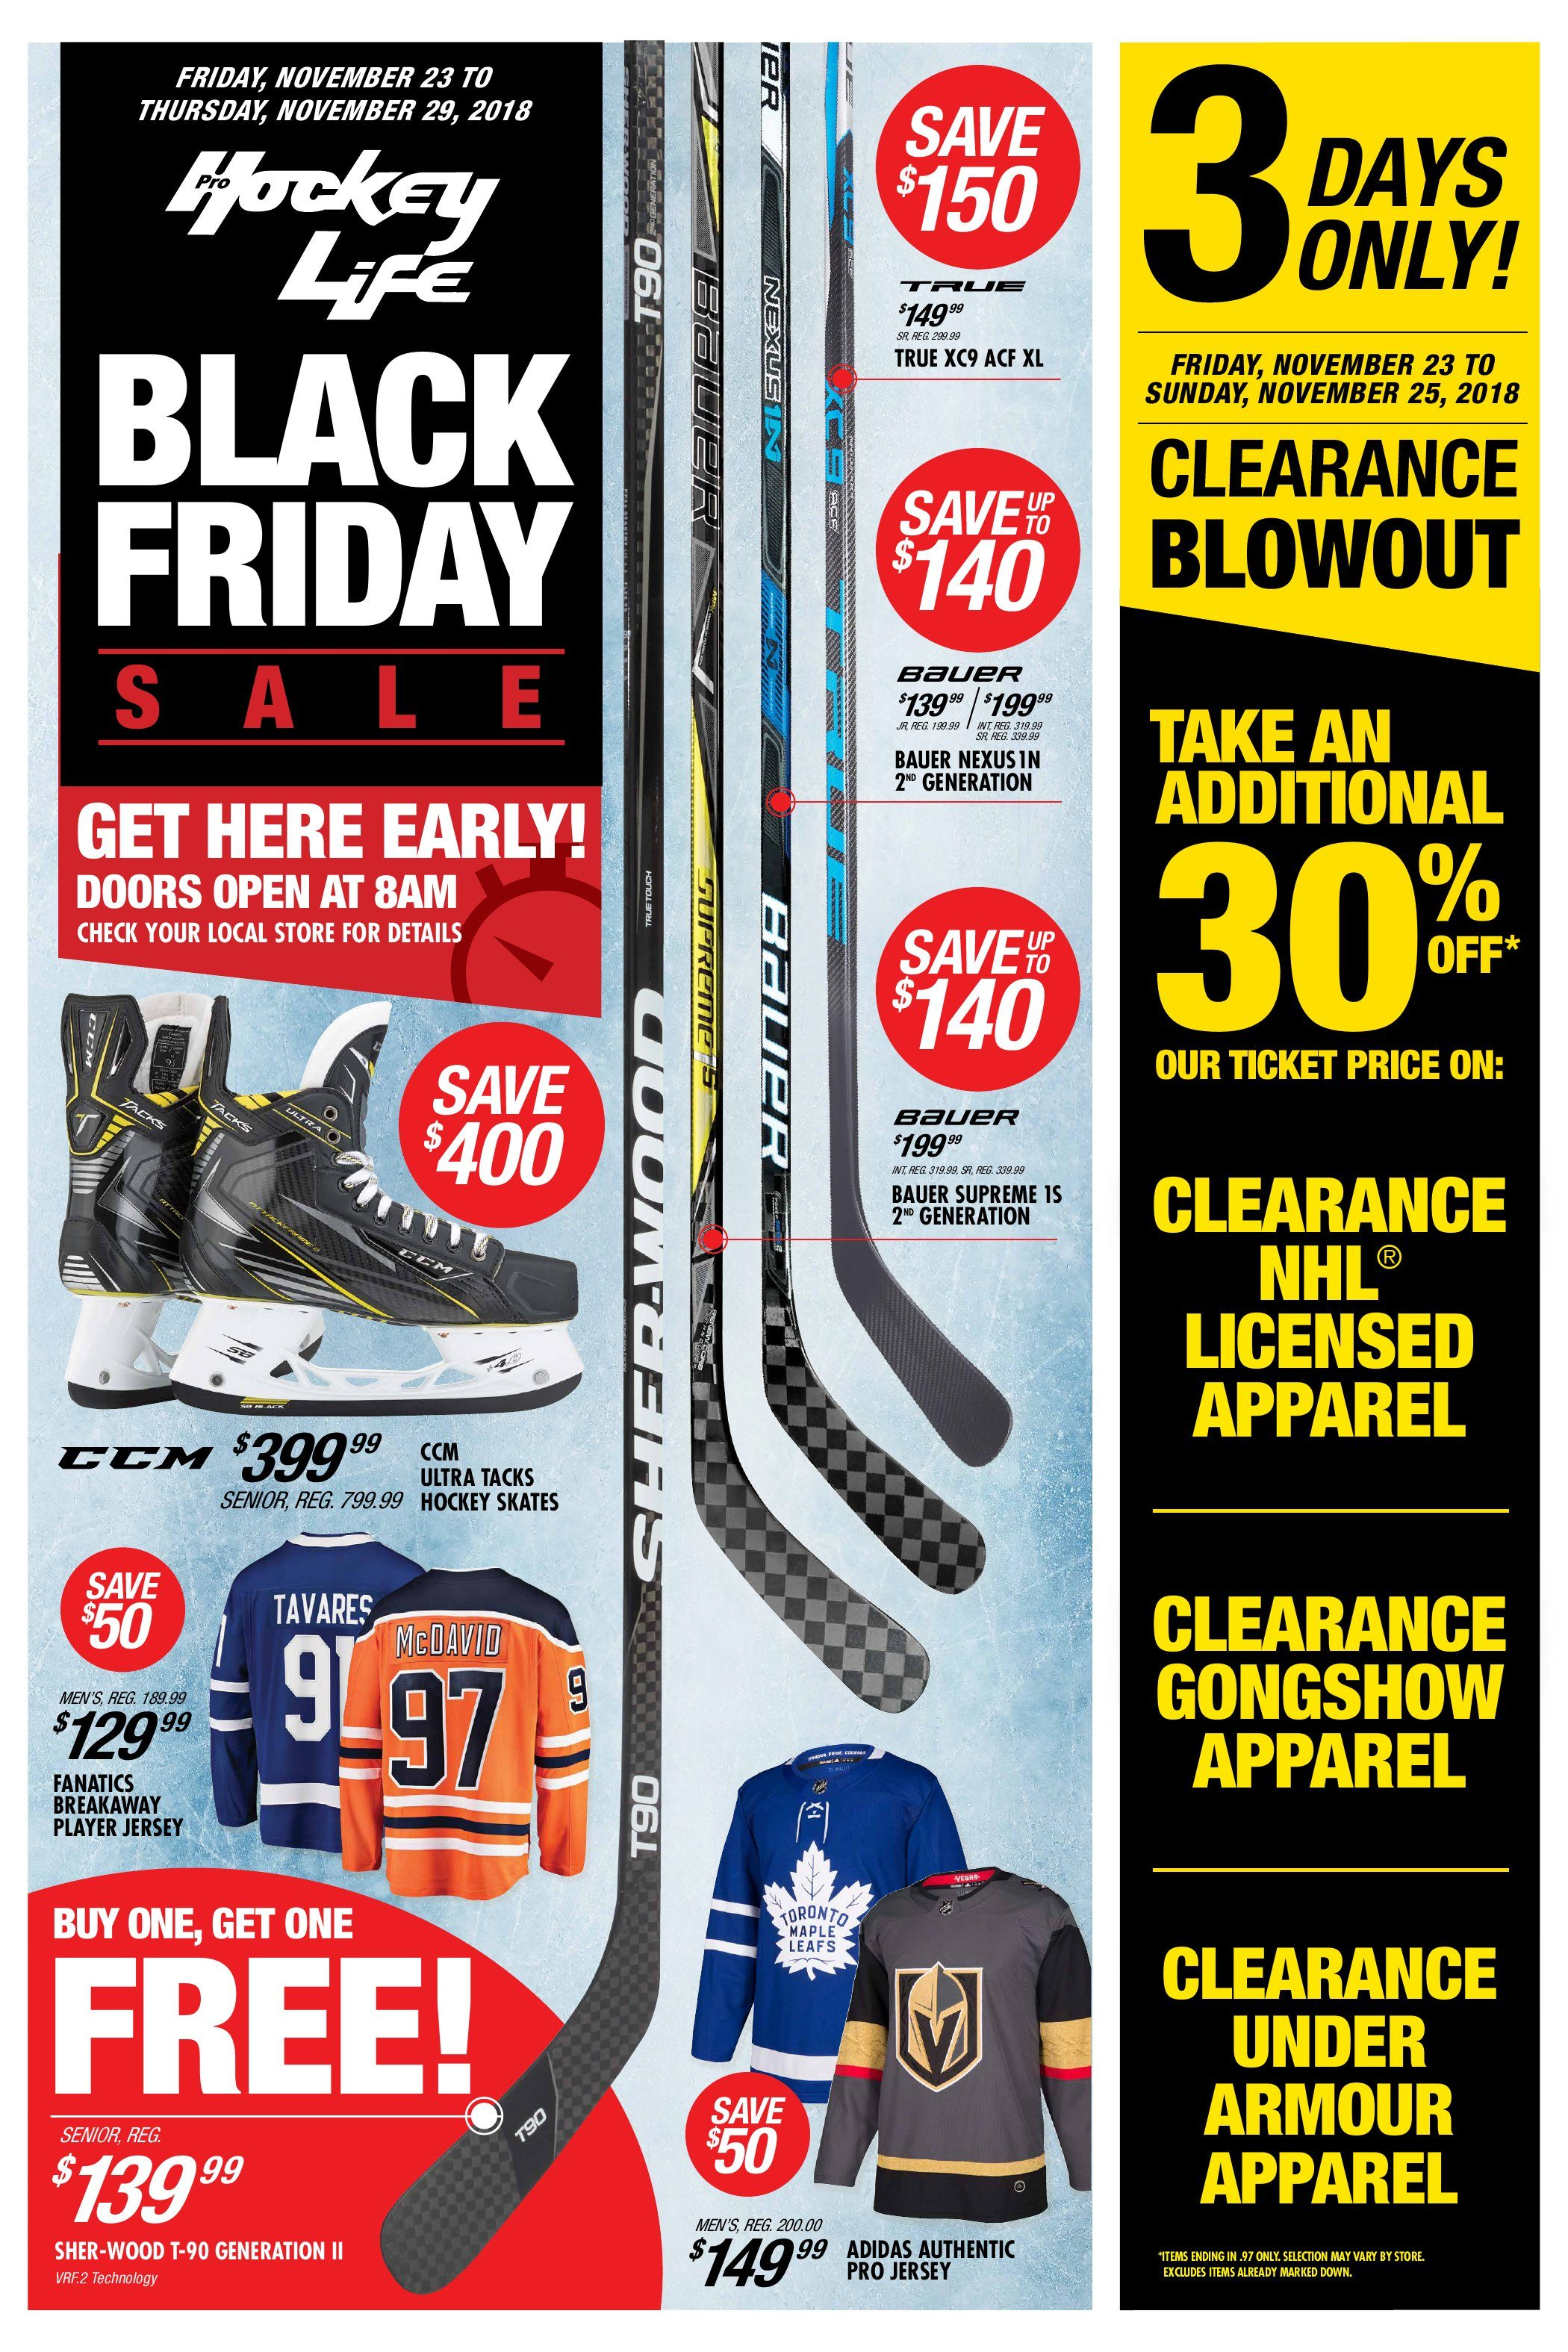 bd7c747f5 Pro Hockey Life Weekly Flyer - Black Friday Sale - Nov 23 – 29 ...